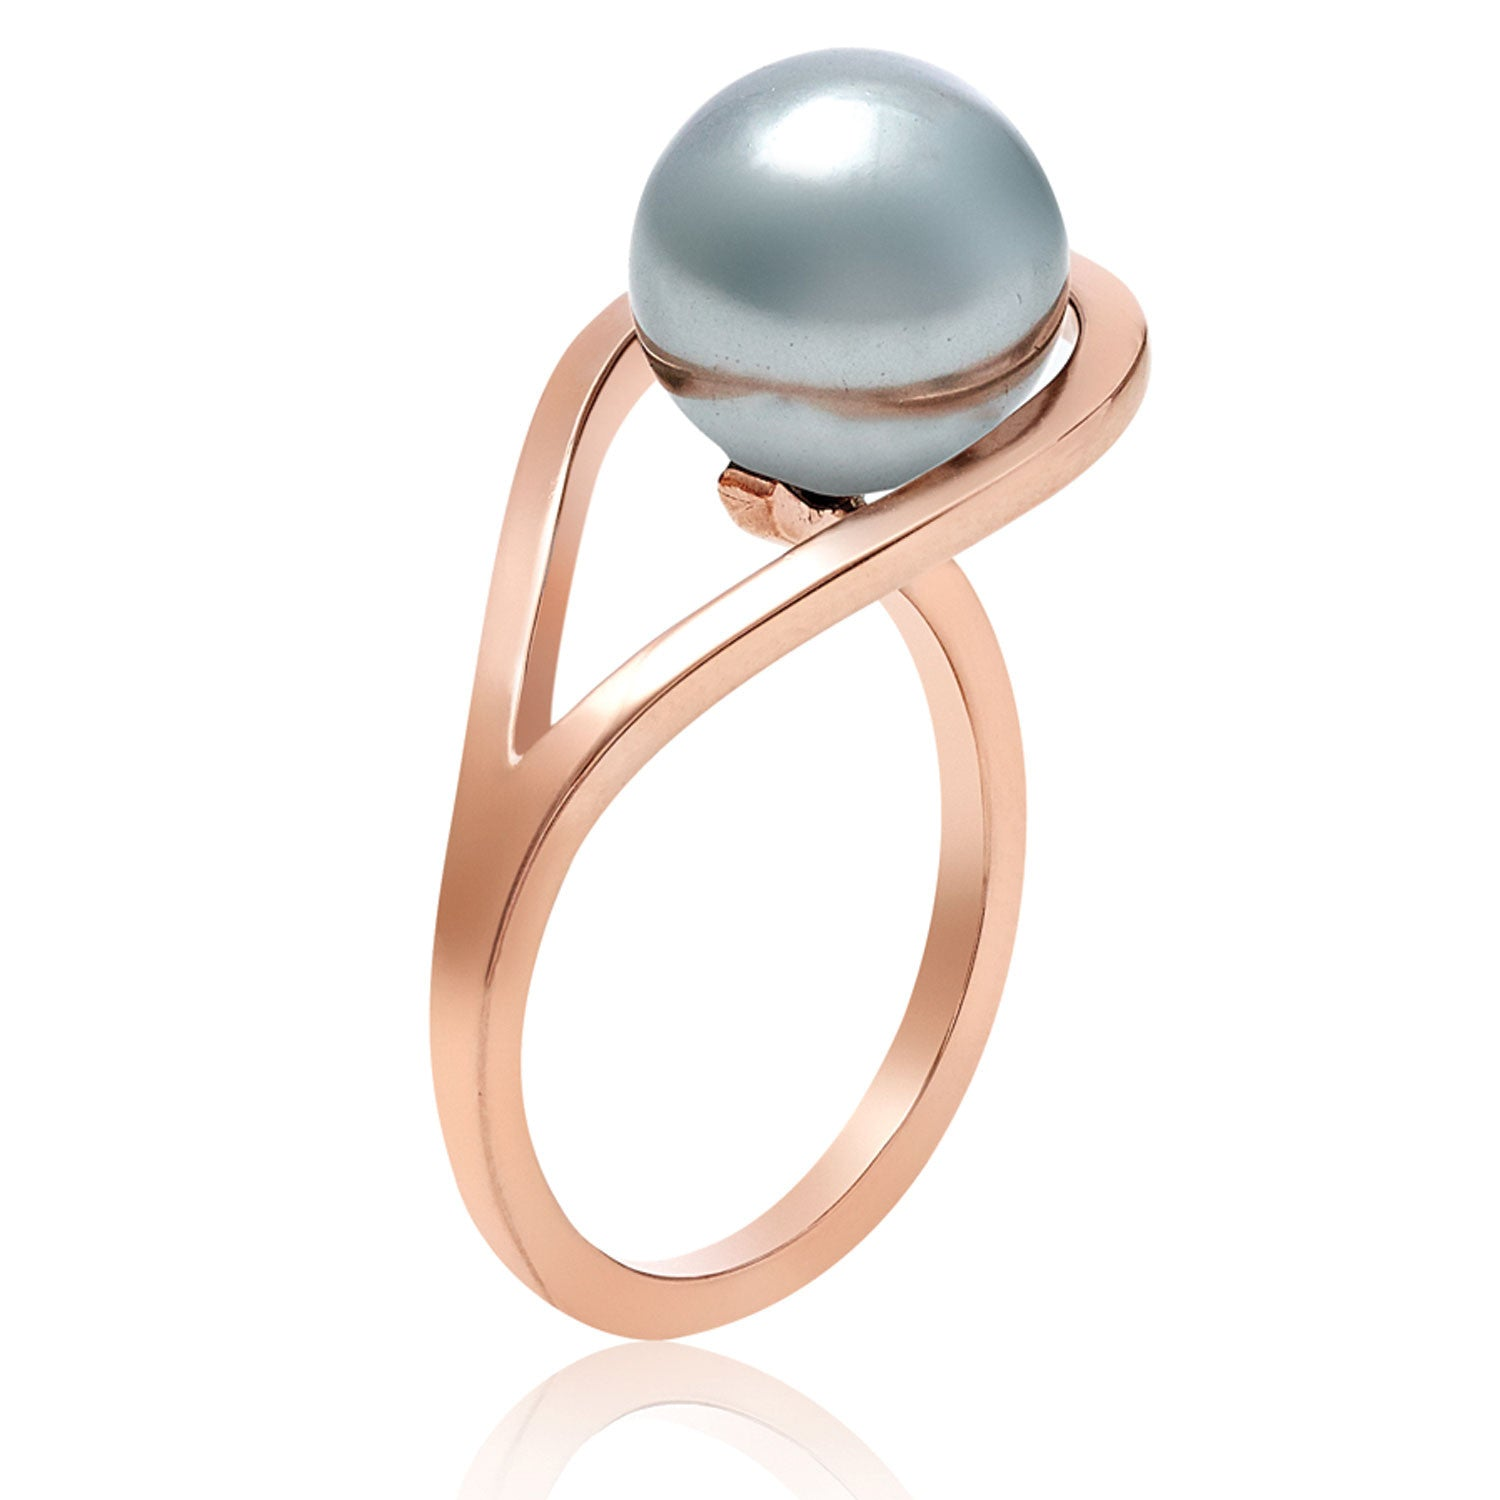 rings products water fresh design jens ring freshwater hansen pearl edit img engagement